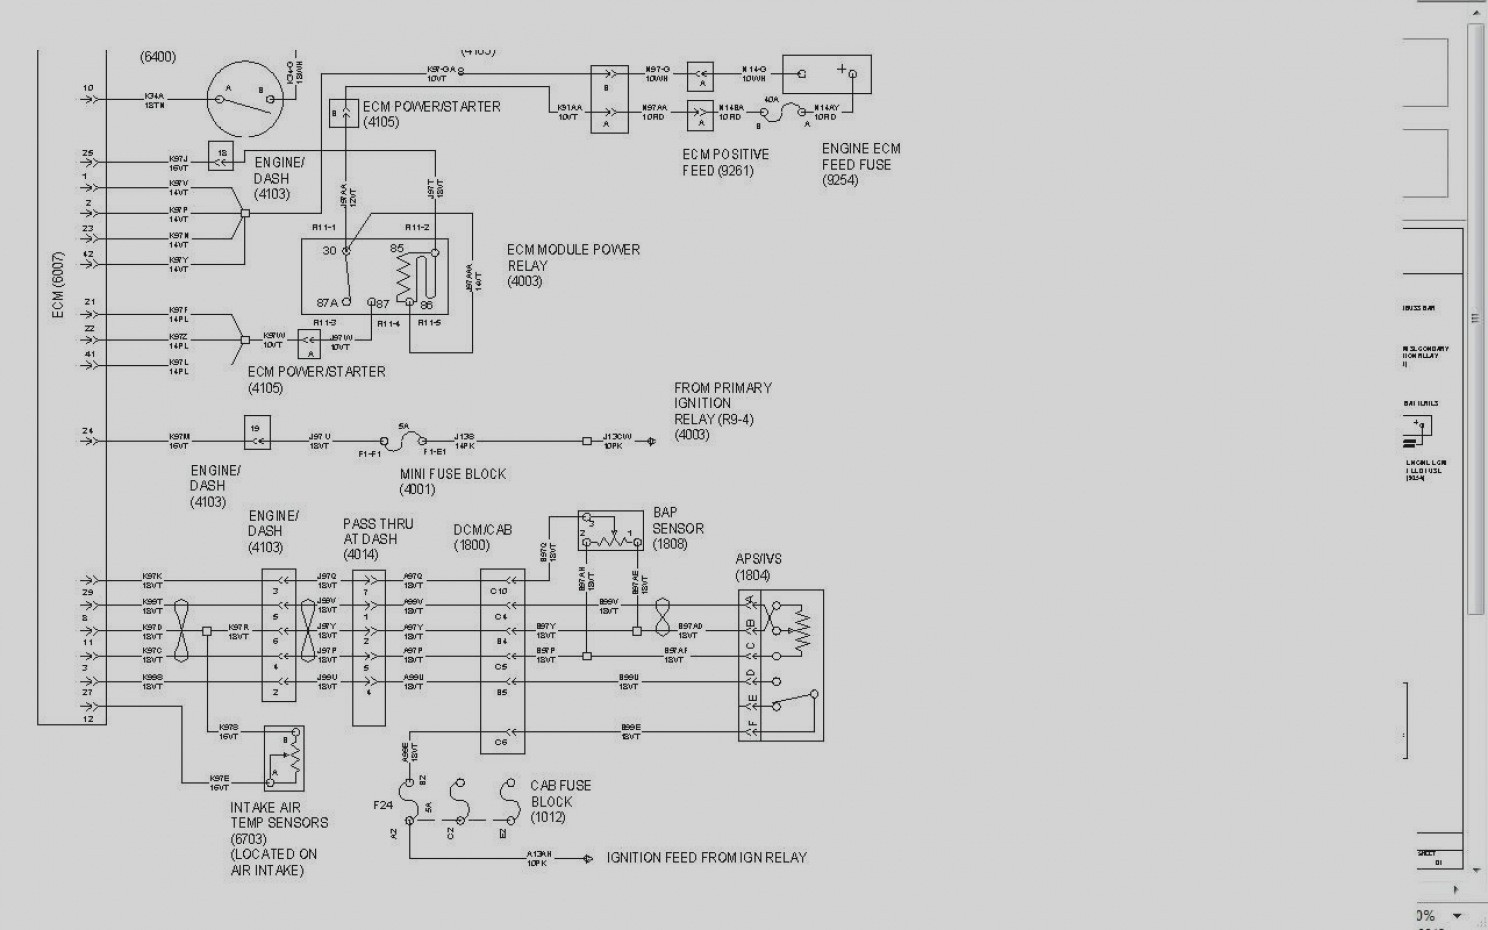 hight resolution of 2006 ic bus dt466 ecm wiring diagram my wiring diagramdt466 wiring schematic my wiring diagram 2006